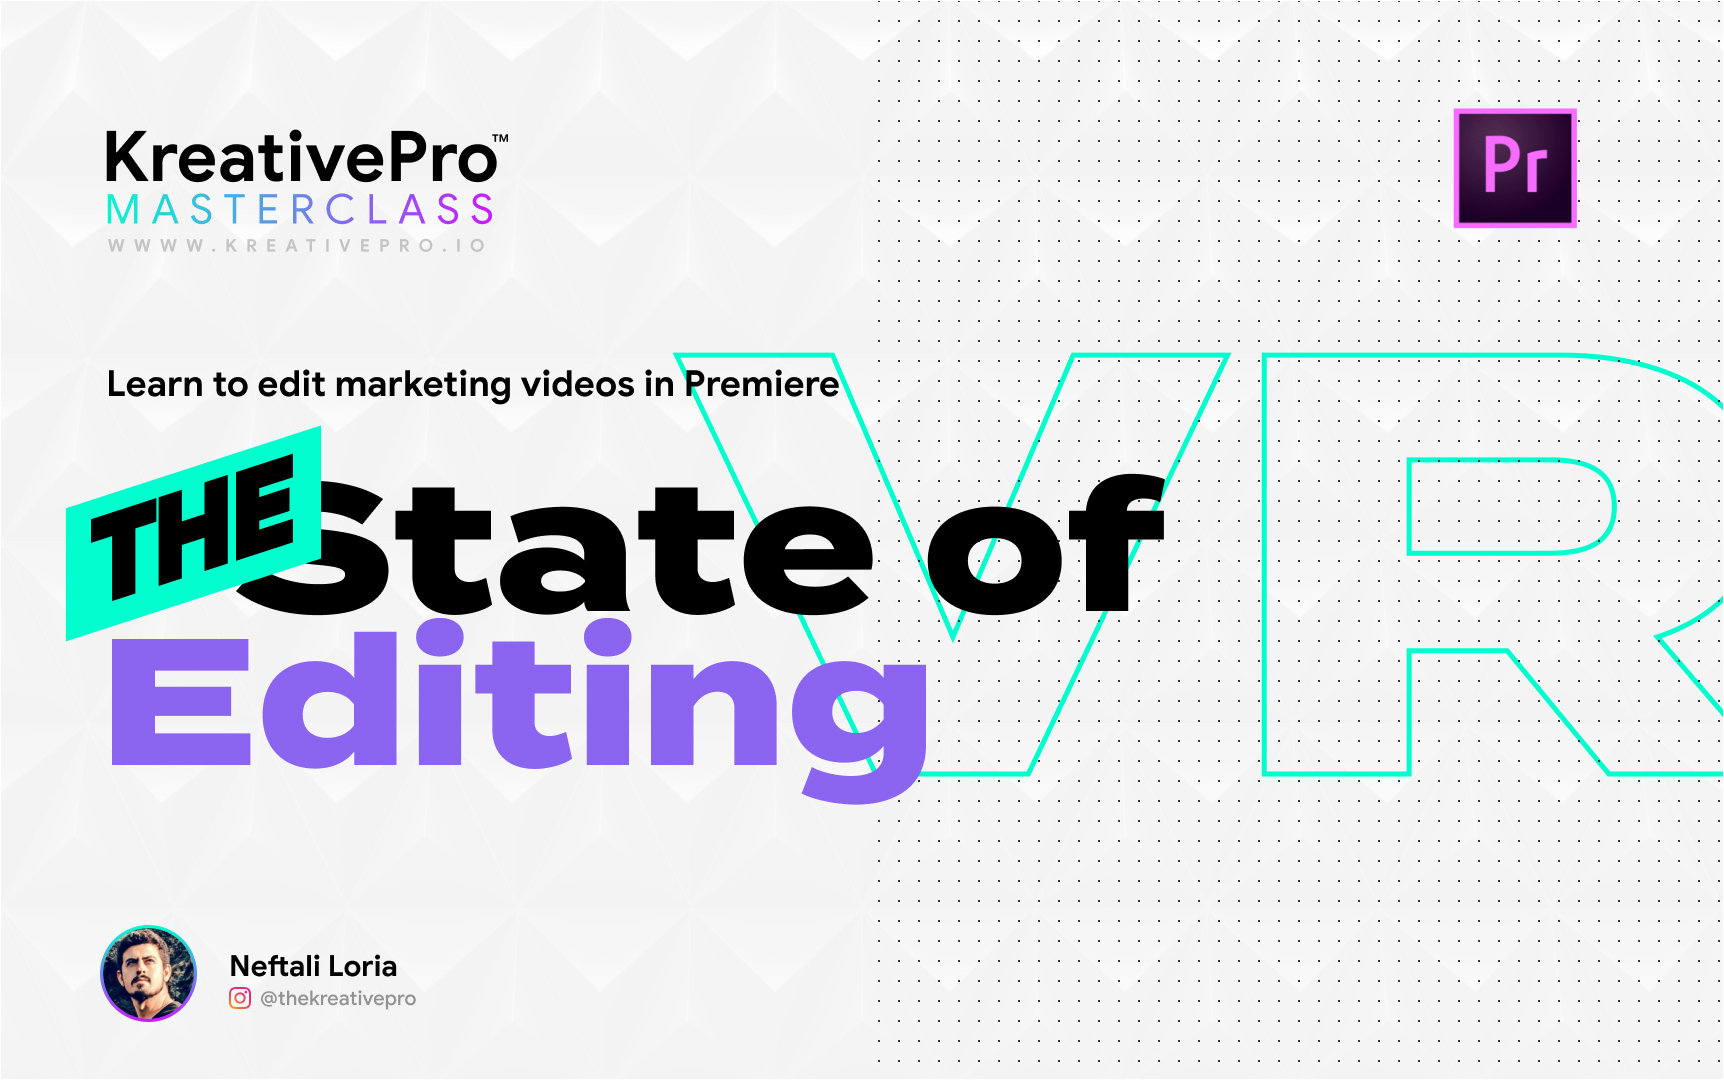 Adobe Premiere 1.3 - The State of Editing